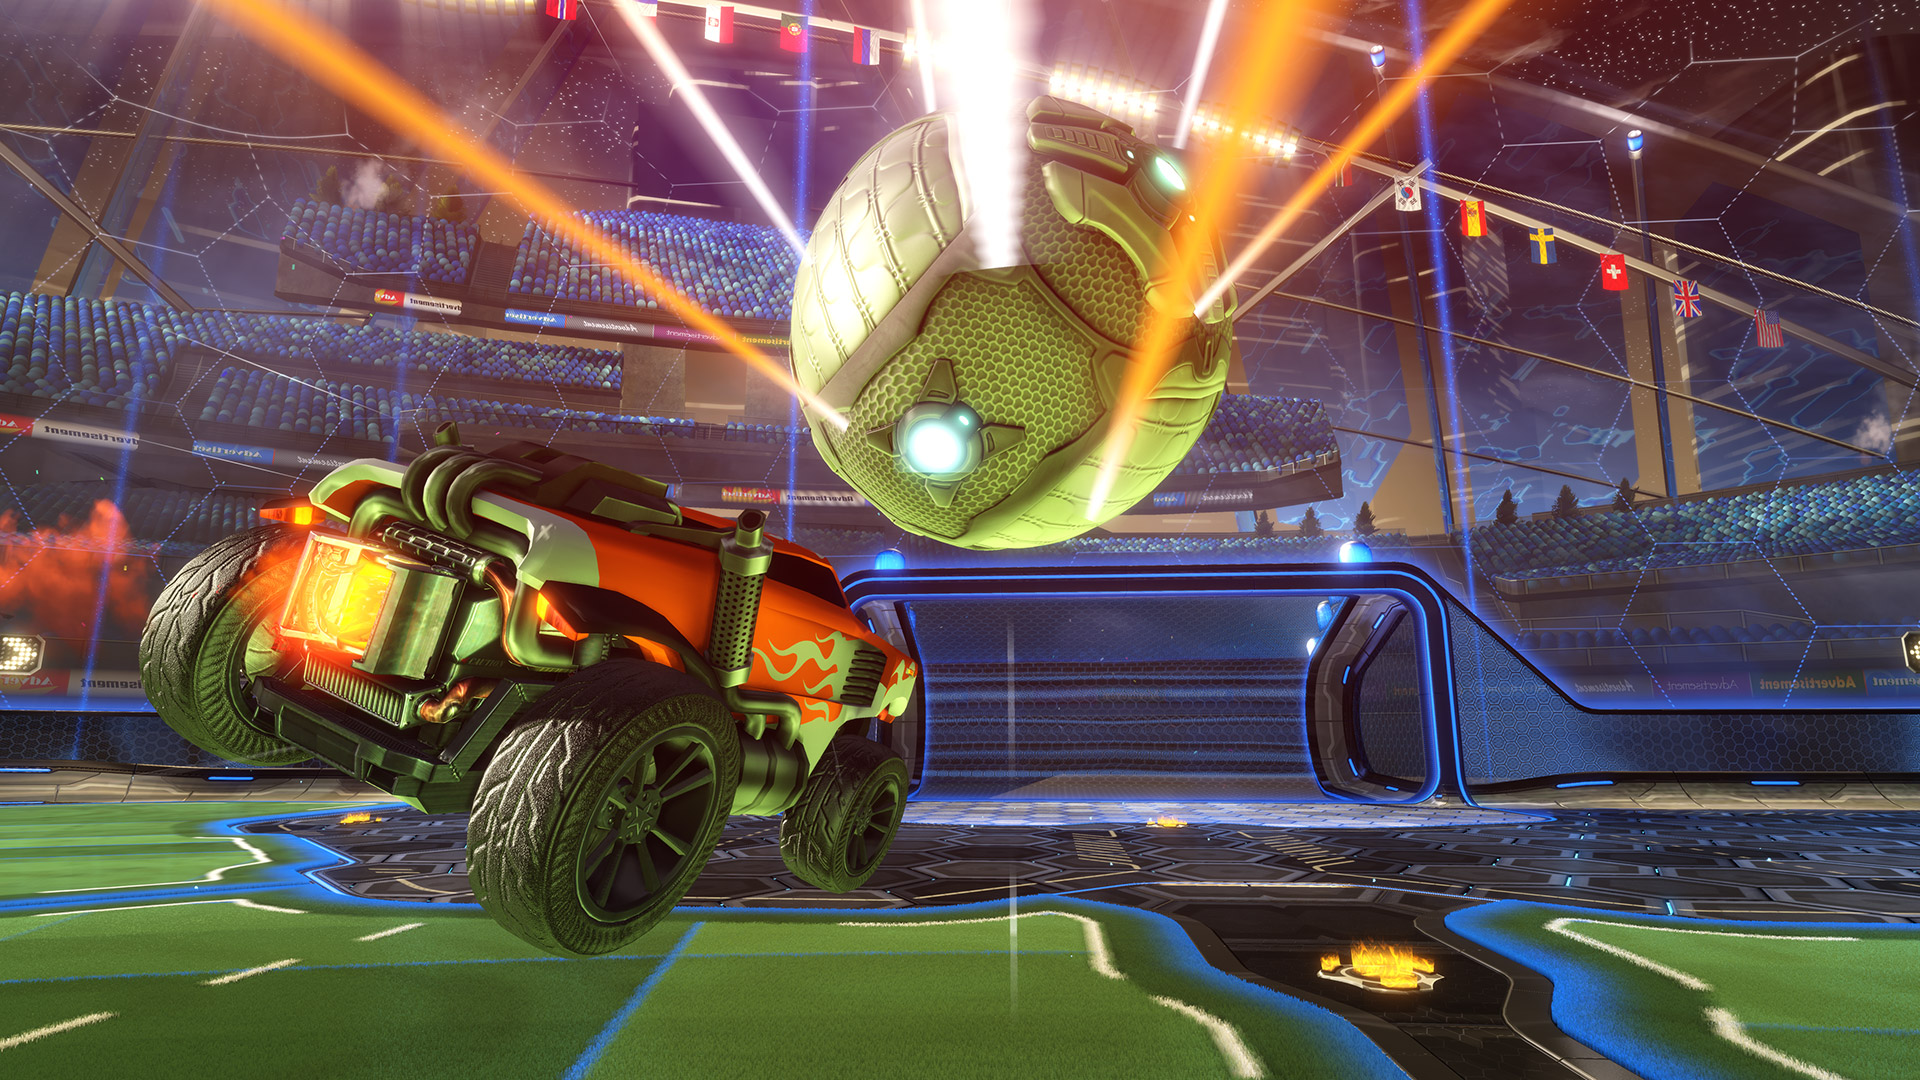 car chasing ball in rocket league